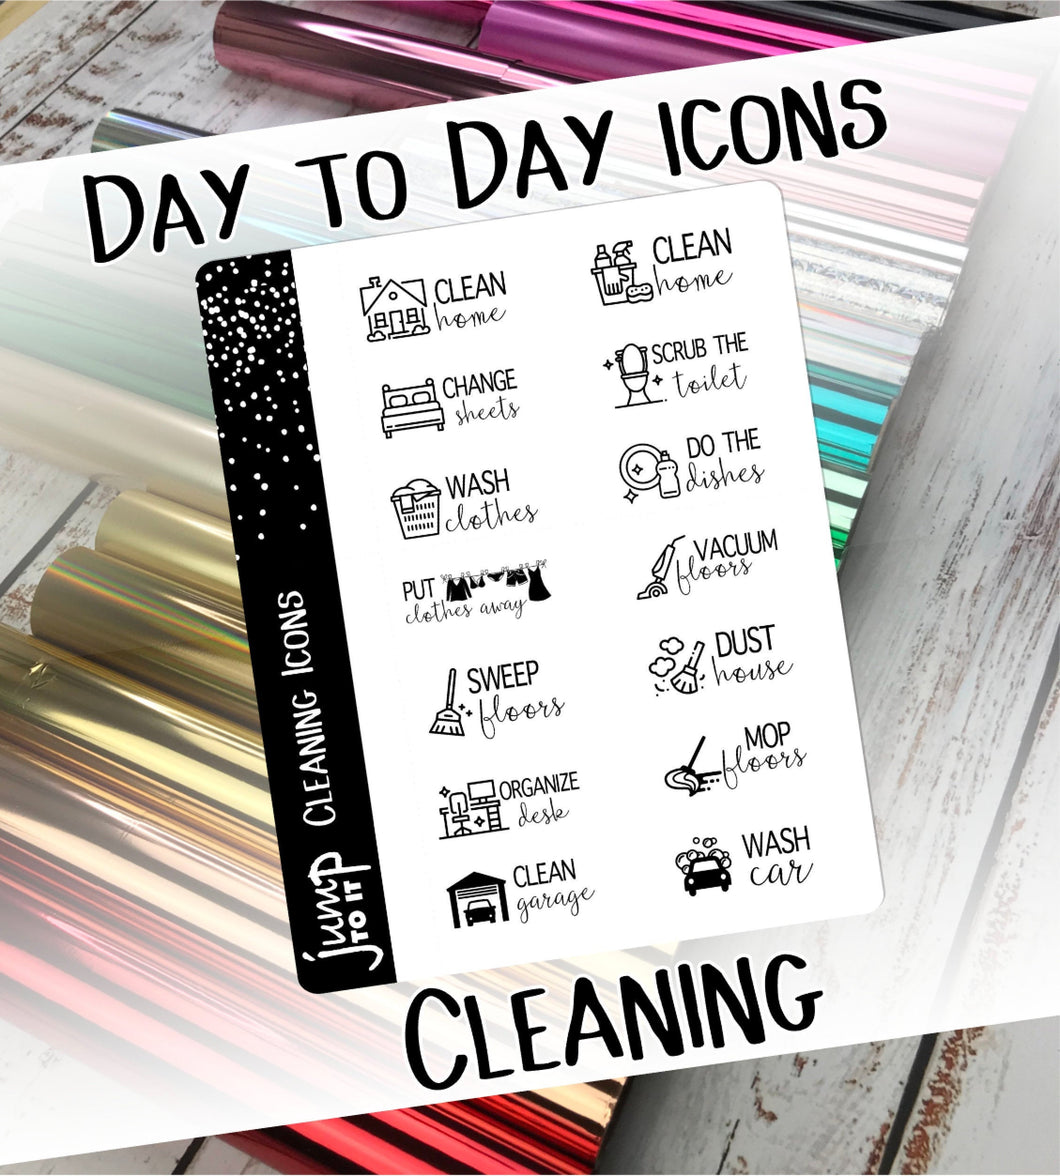 Foil Planner Stickers - CLEANING Day to Day icons - Erin Condren Happy Planner B6 Hobo - chores vacuum